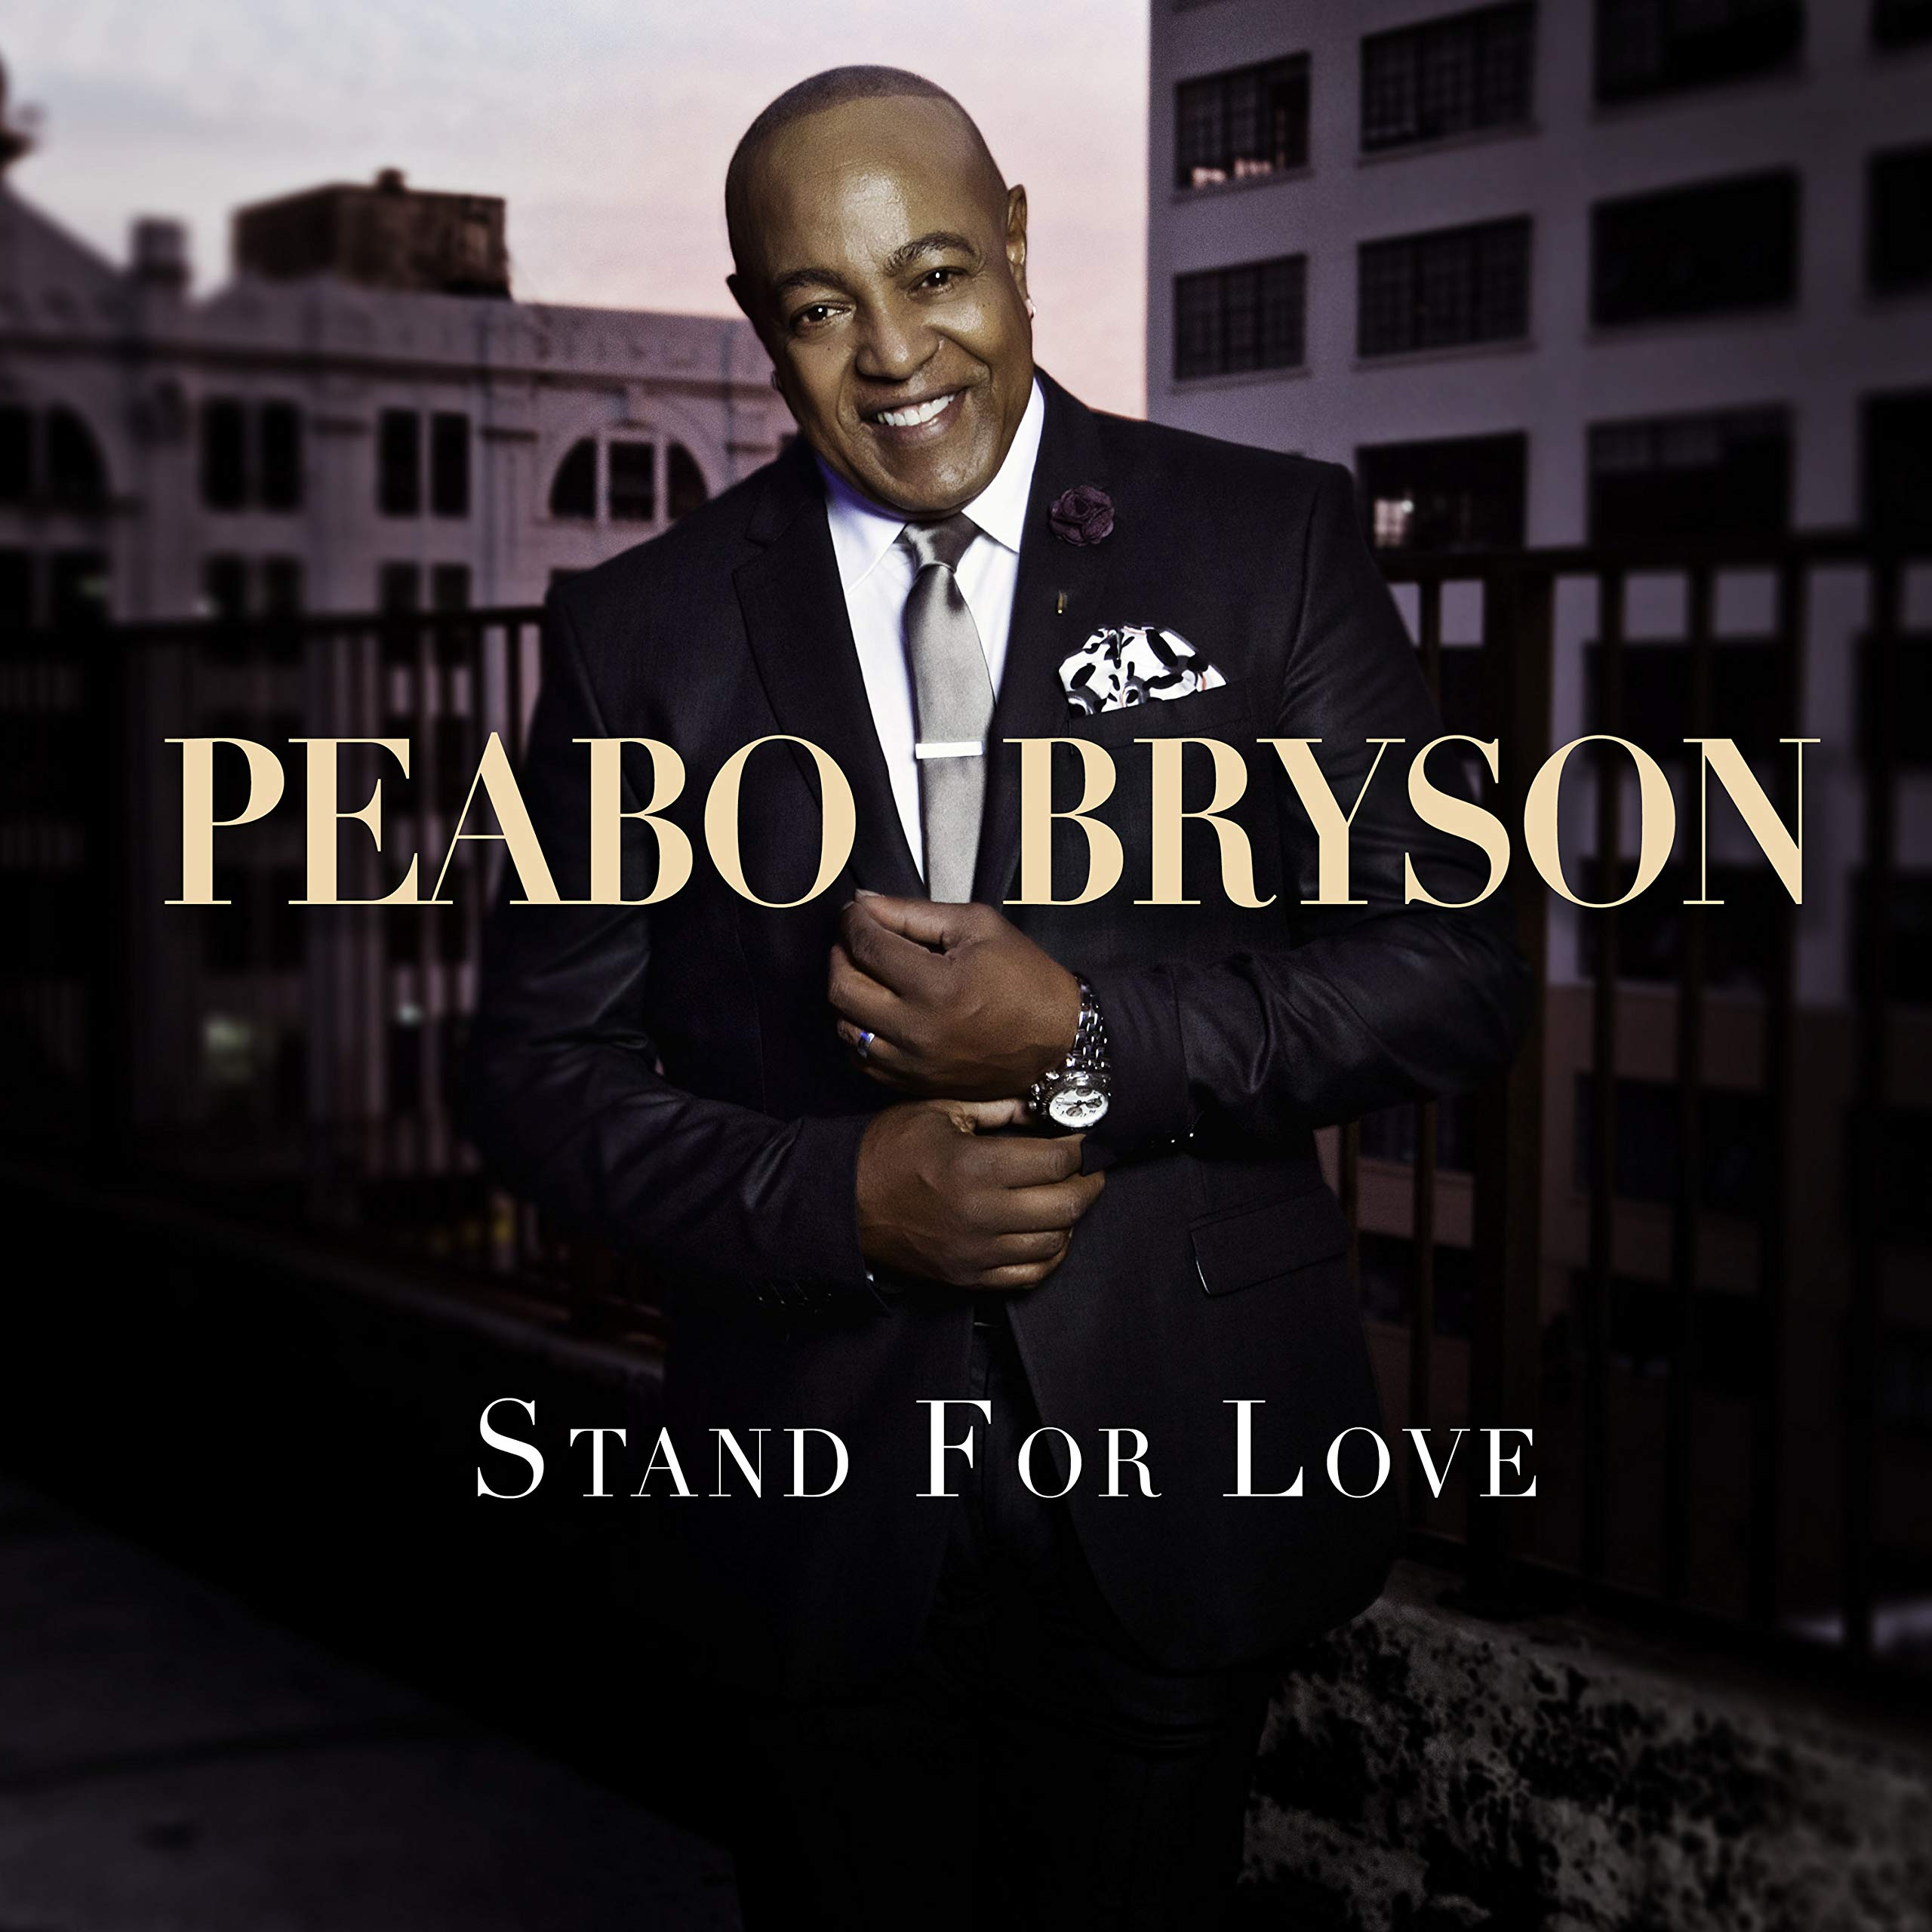 CD : Peabo Bryson - Stand For Love (wm) (Deluxe Edition)